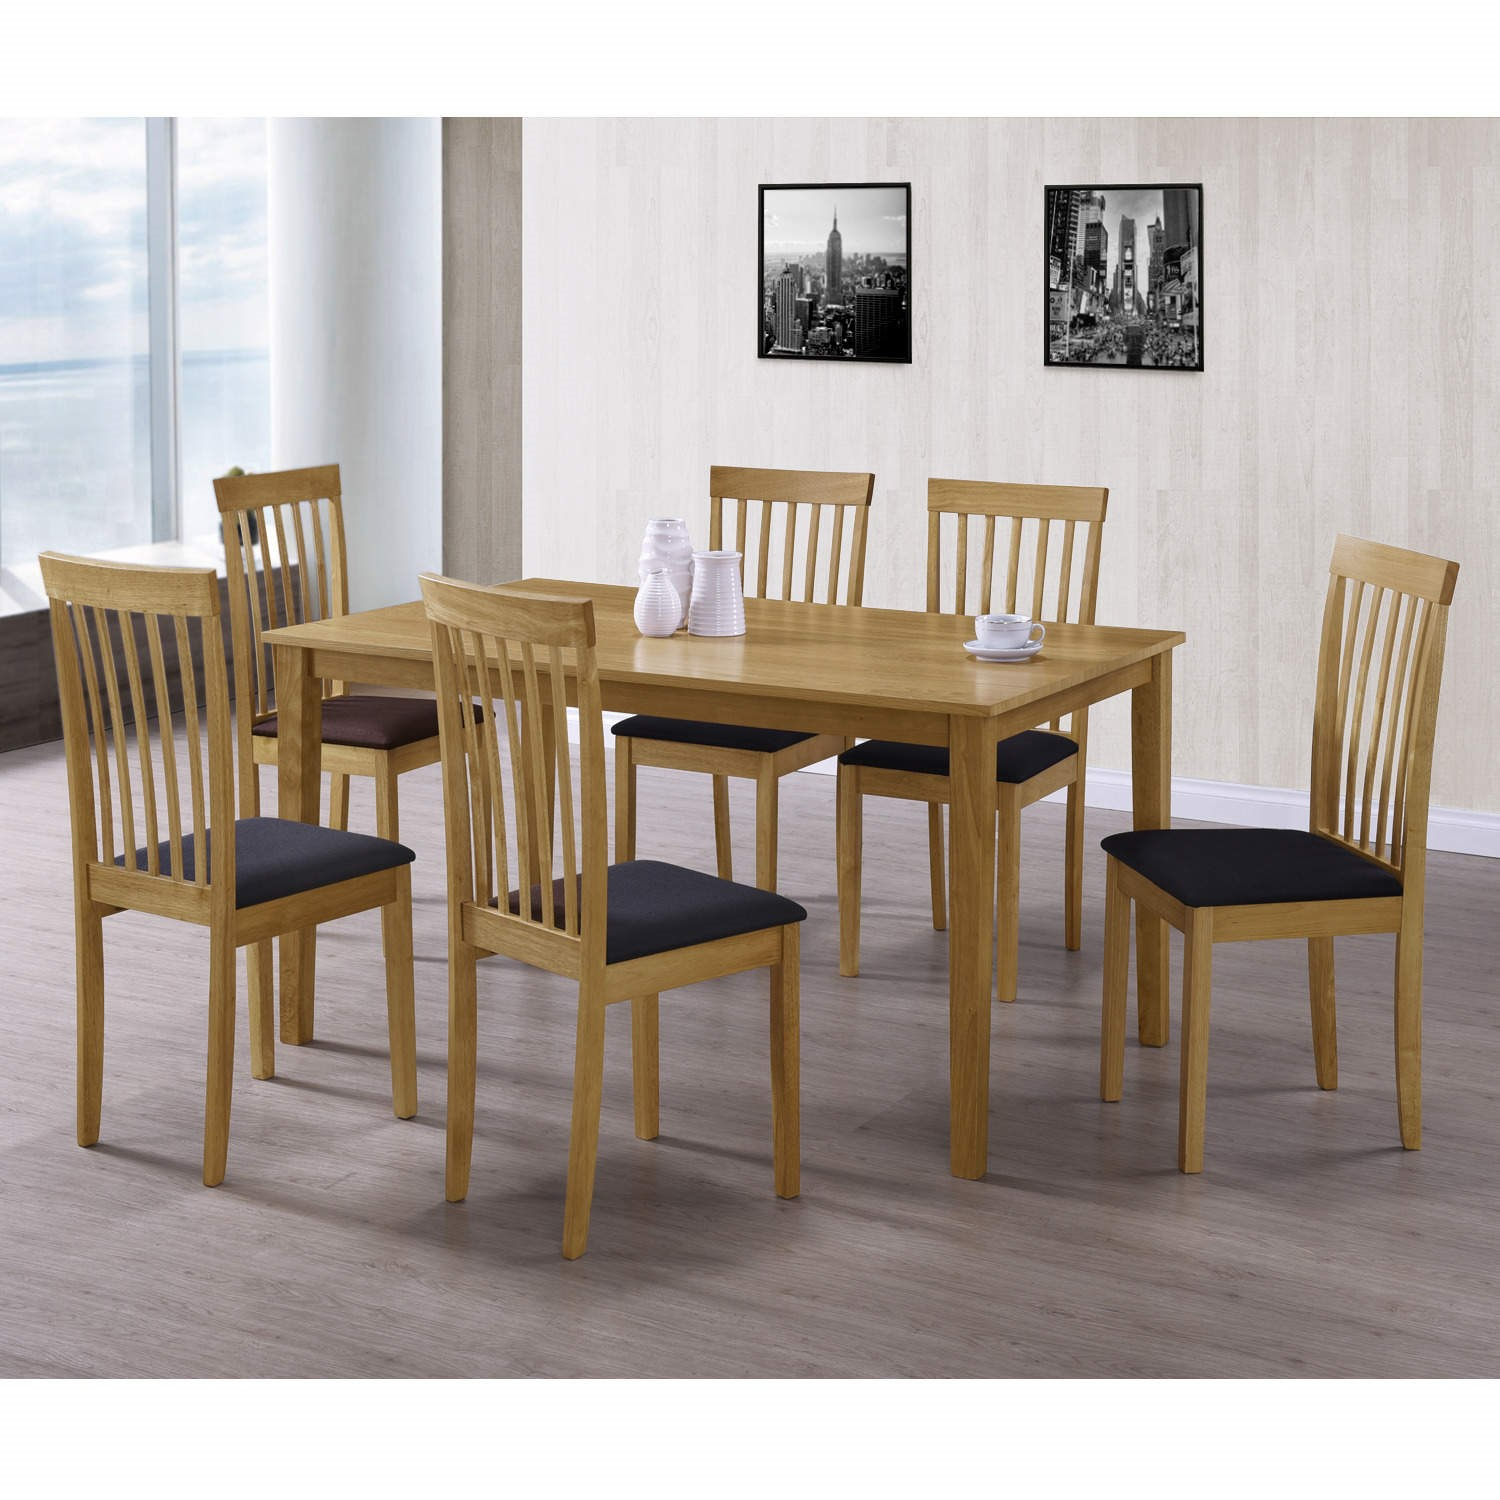 New Haven Large 6 Seater Dining Table In Light Oak 90cm X 150cm